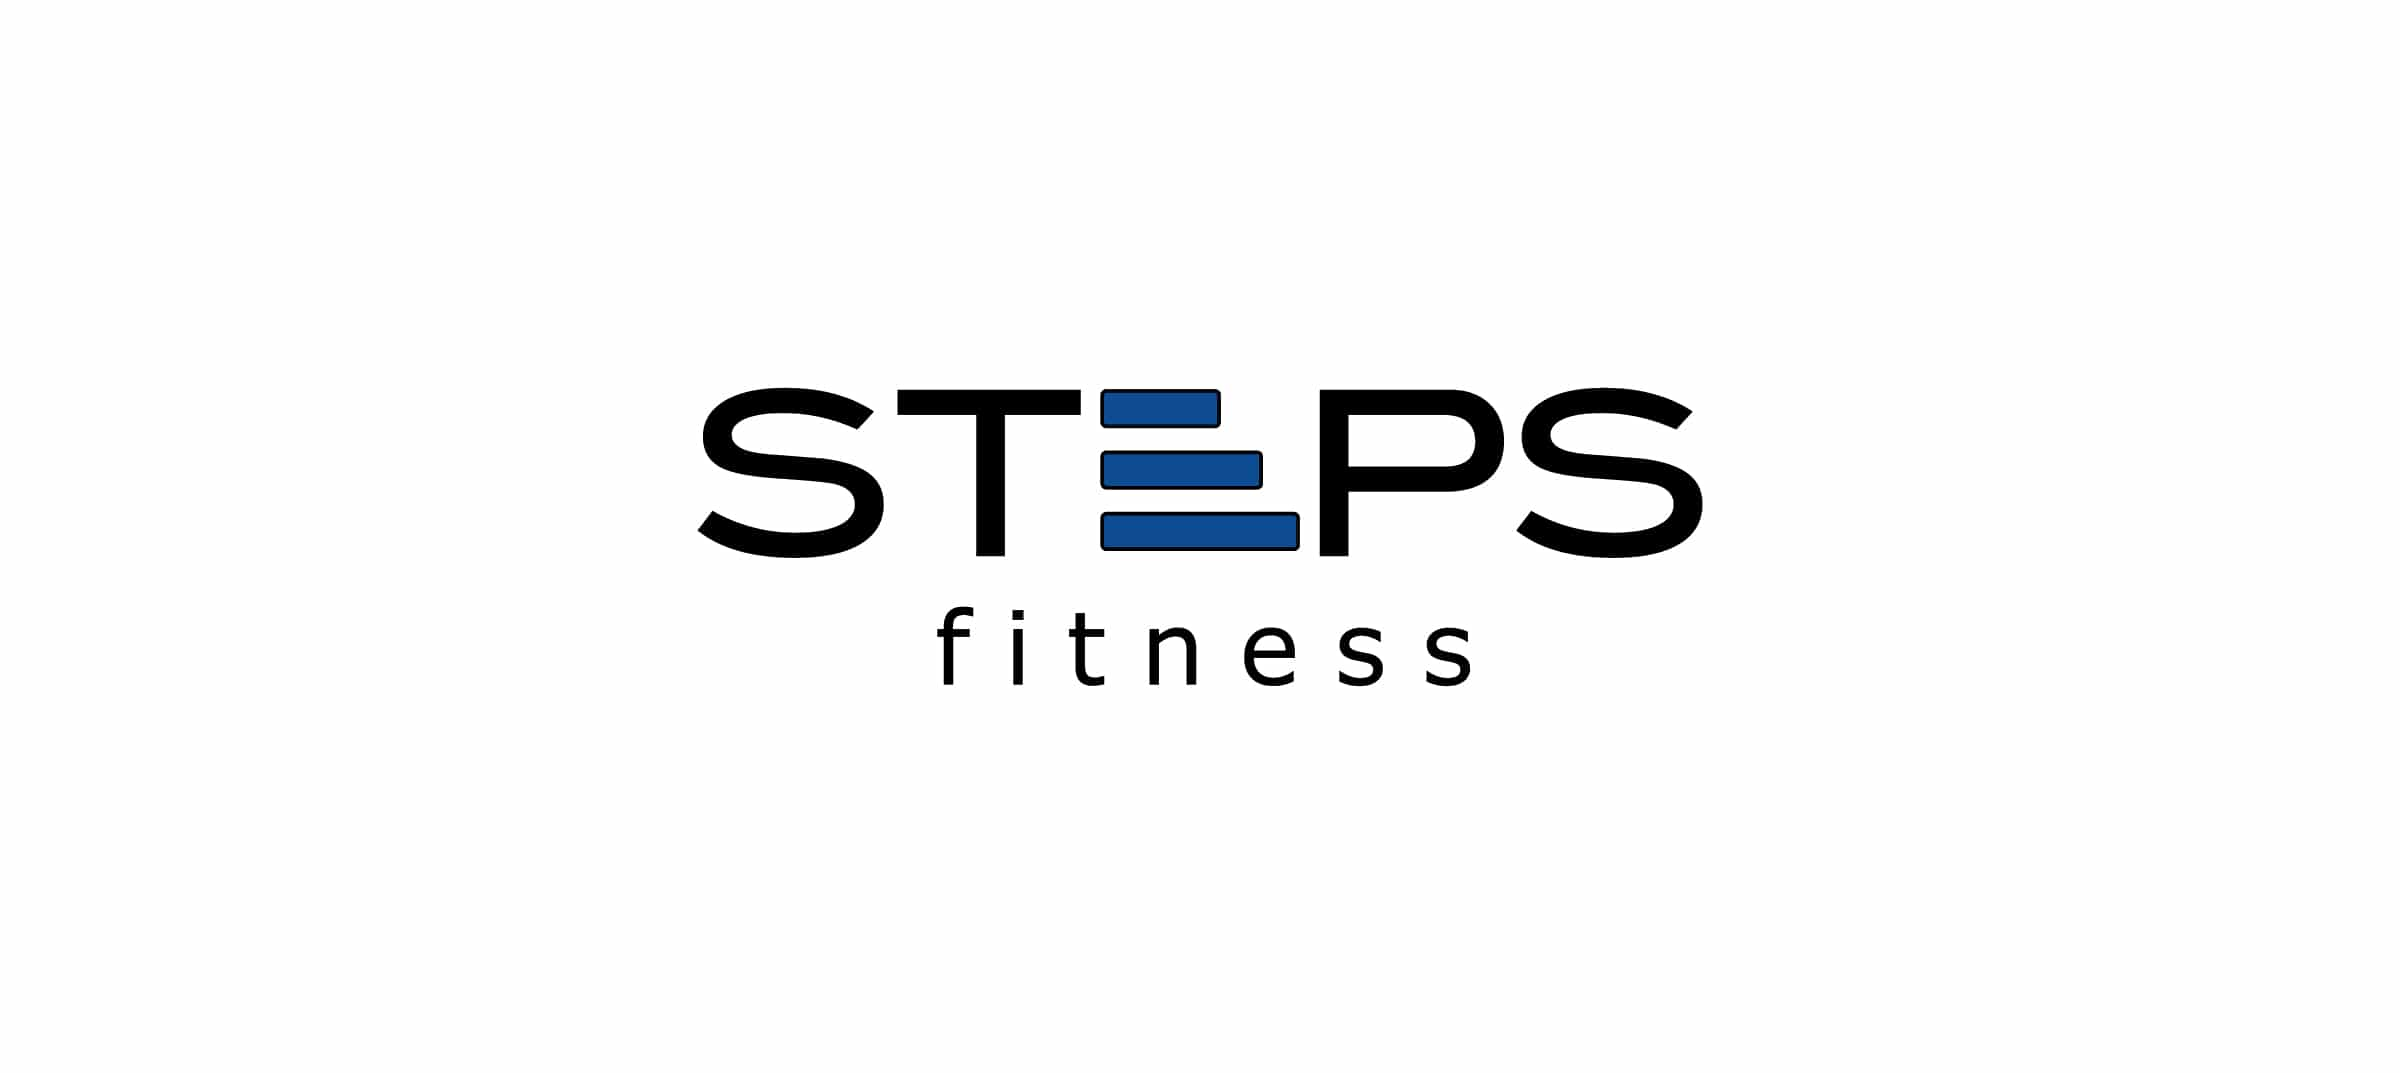 STEPS Fitness - Nashville's Premier Personal Fitness Training Center